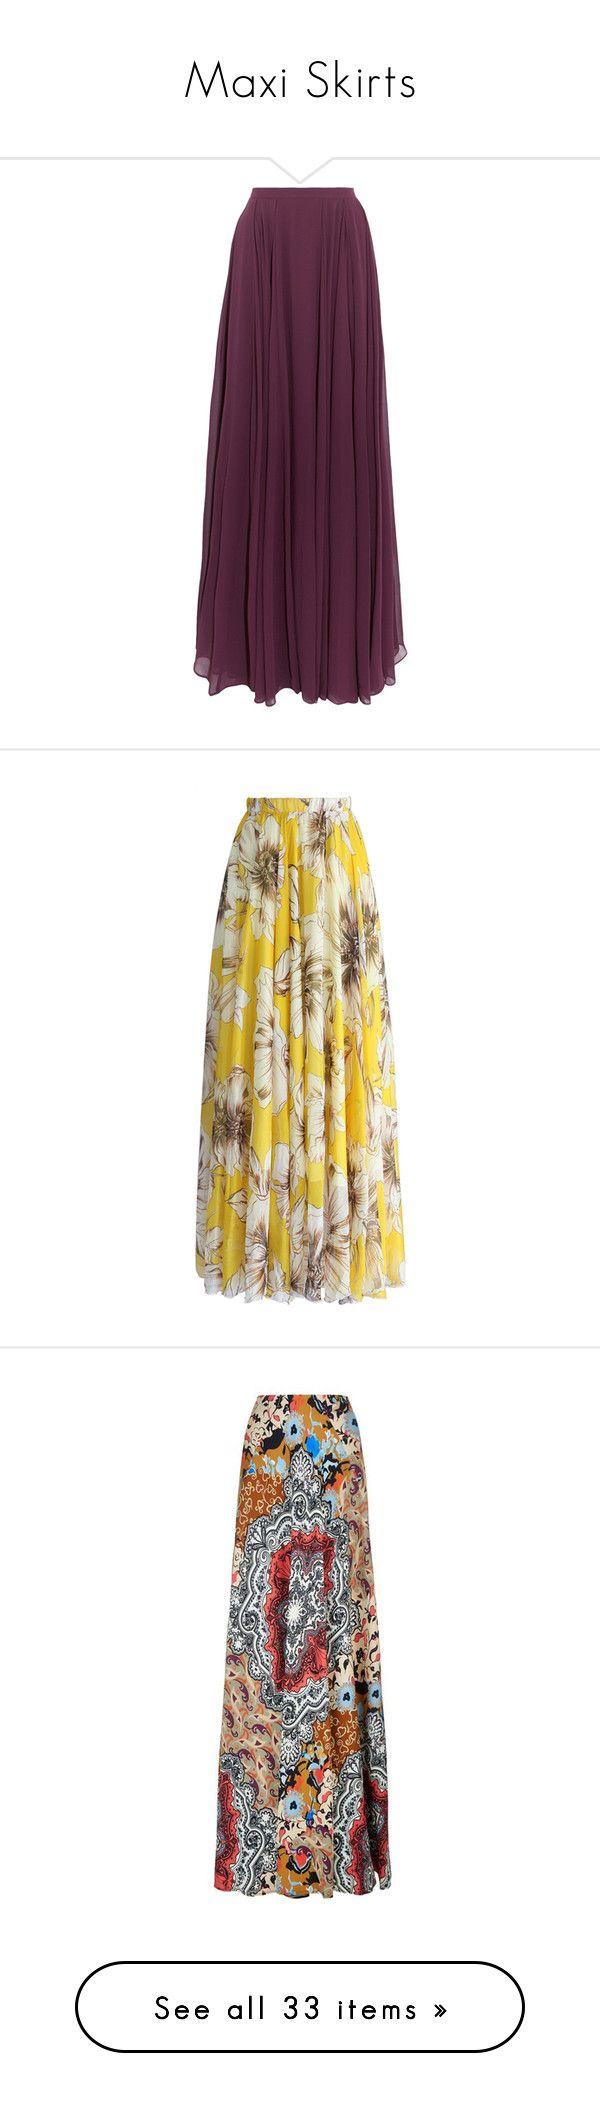 """""""Maxi Skirts"""" by ladyvalkyrie ❤ liked on Polyvore featuring skirts, bottoms, maxi skirt, faldas, grape, long purple skirt, pleated maxi skirt, purple pleated maxi skirt, long maxi skirts and purple maxi skirt"""